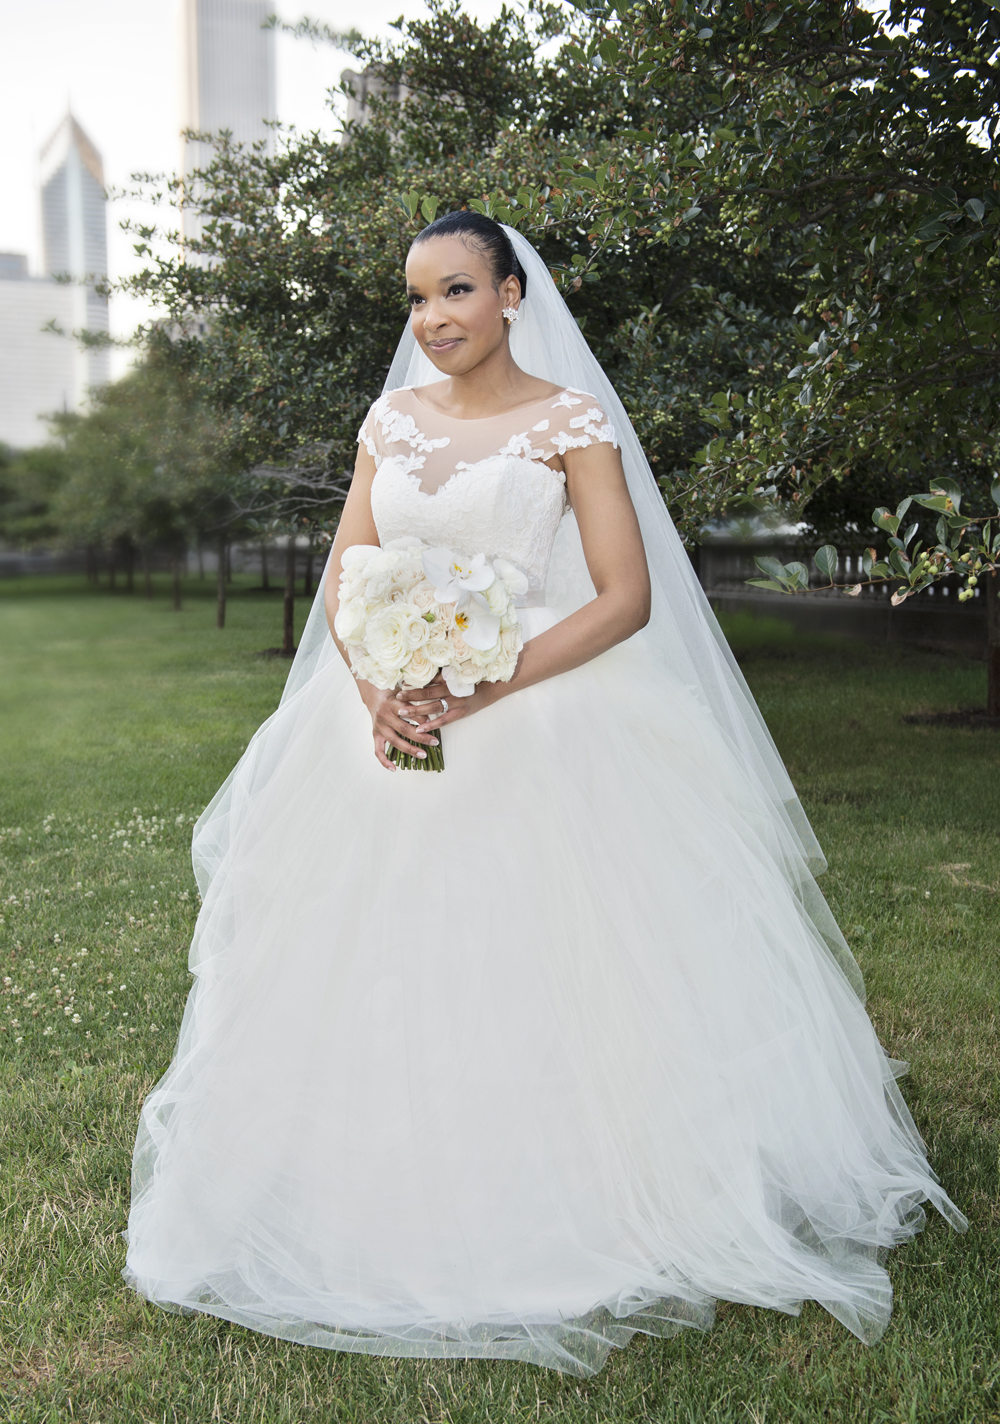 why you should practice wearing your wedding dress